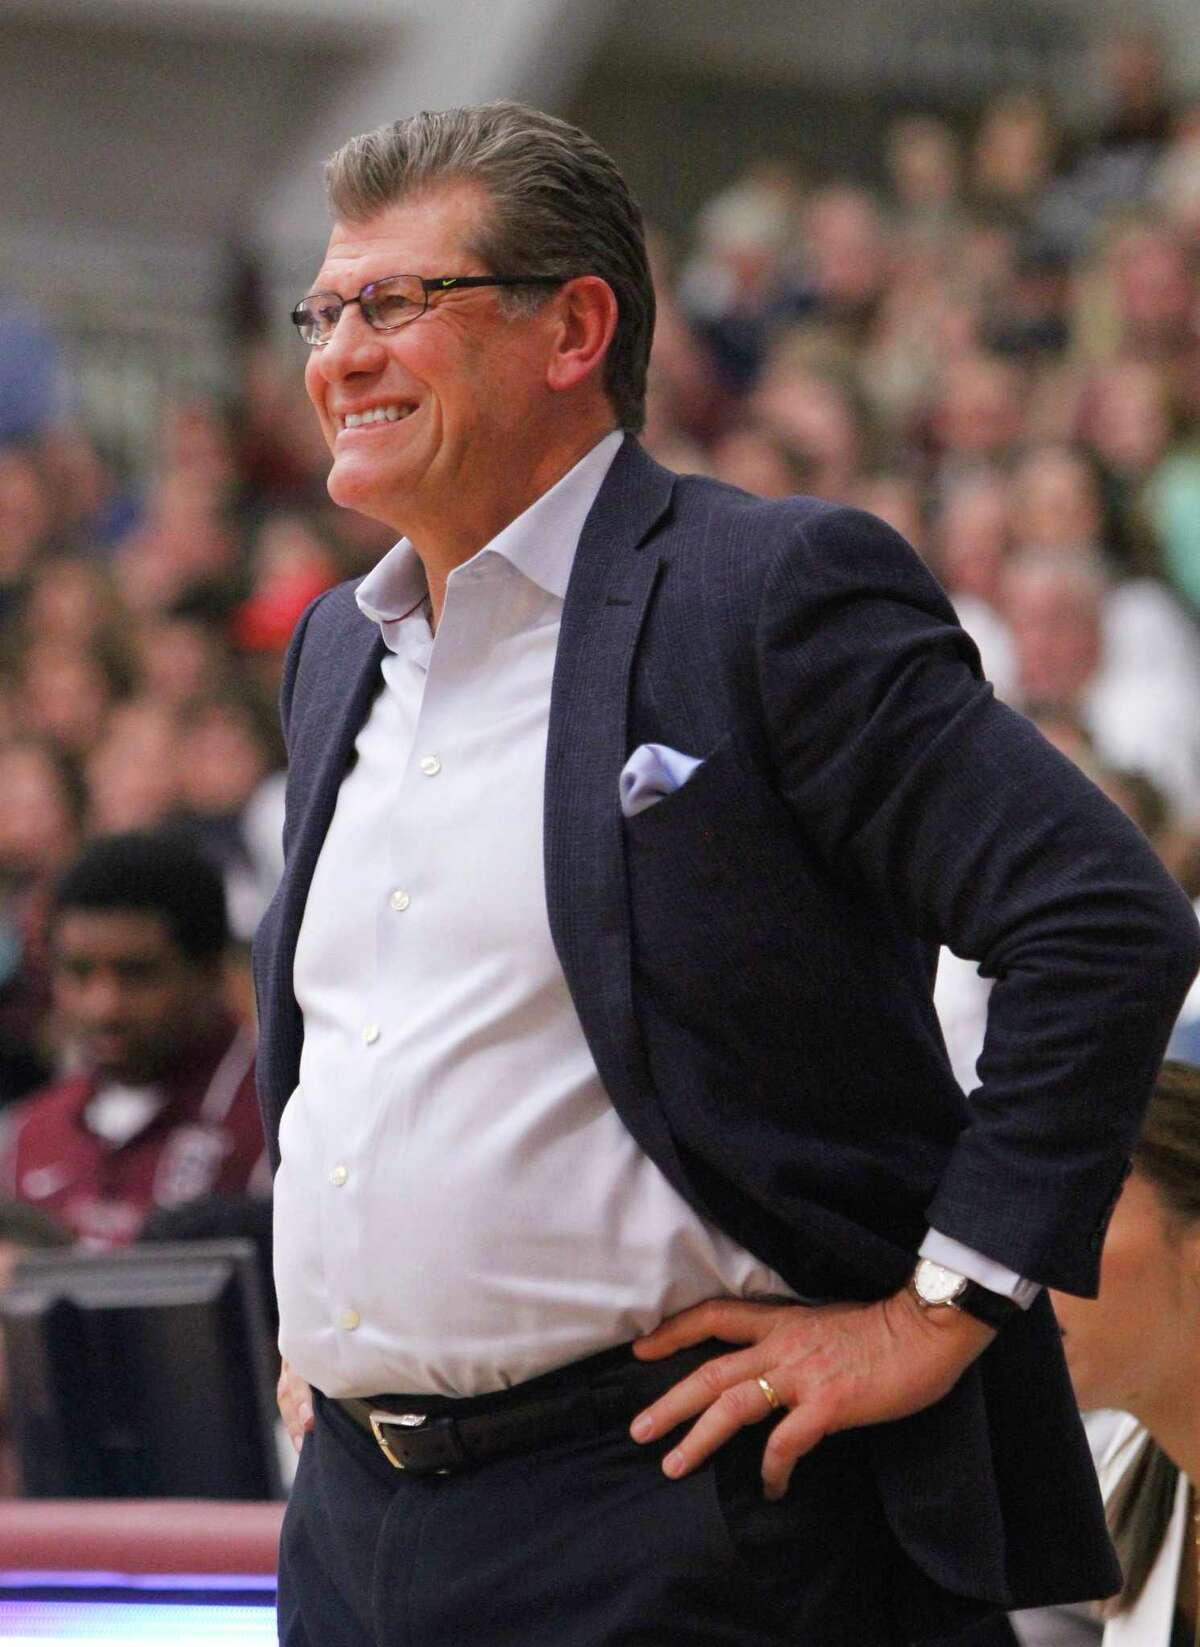 Connecticut head coach Geno Auriemma watches his players in the third quarter of an NCAA college basketball game against Colgate in Hamilton, N.Y., Wednesday, Dec. 9, 2015. Connecticut won 94-50. (AP Photo/Nick Lisi)